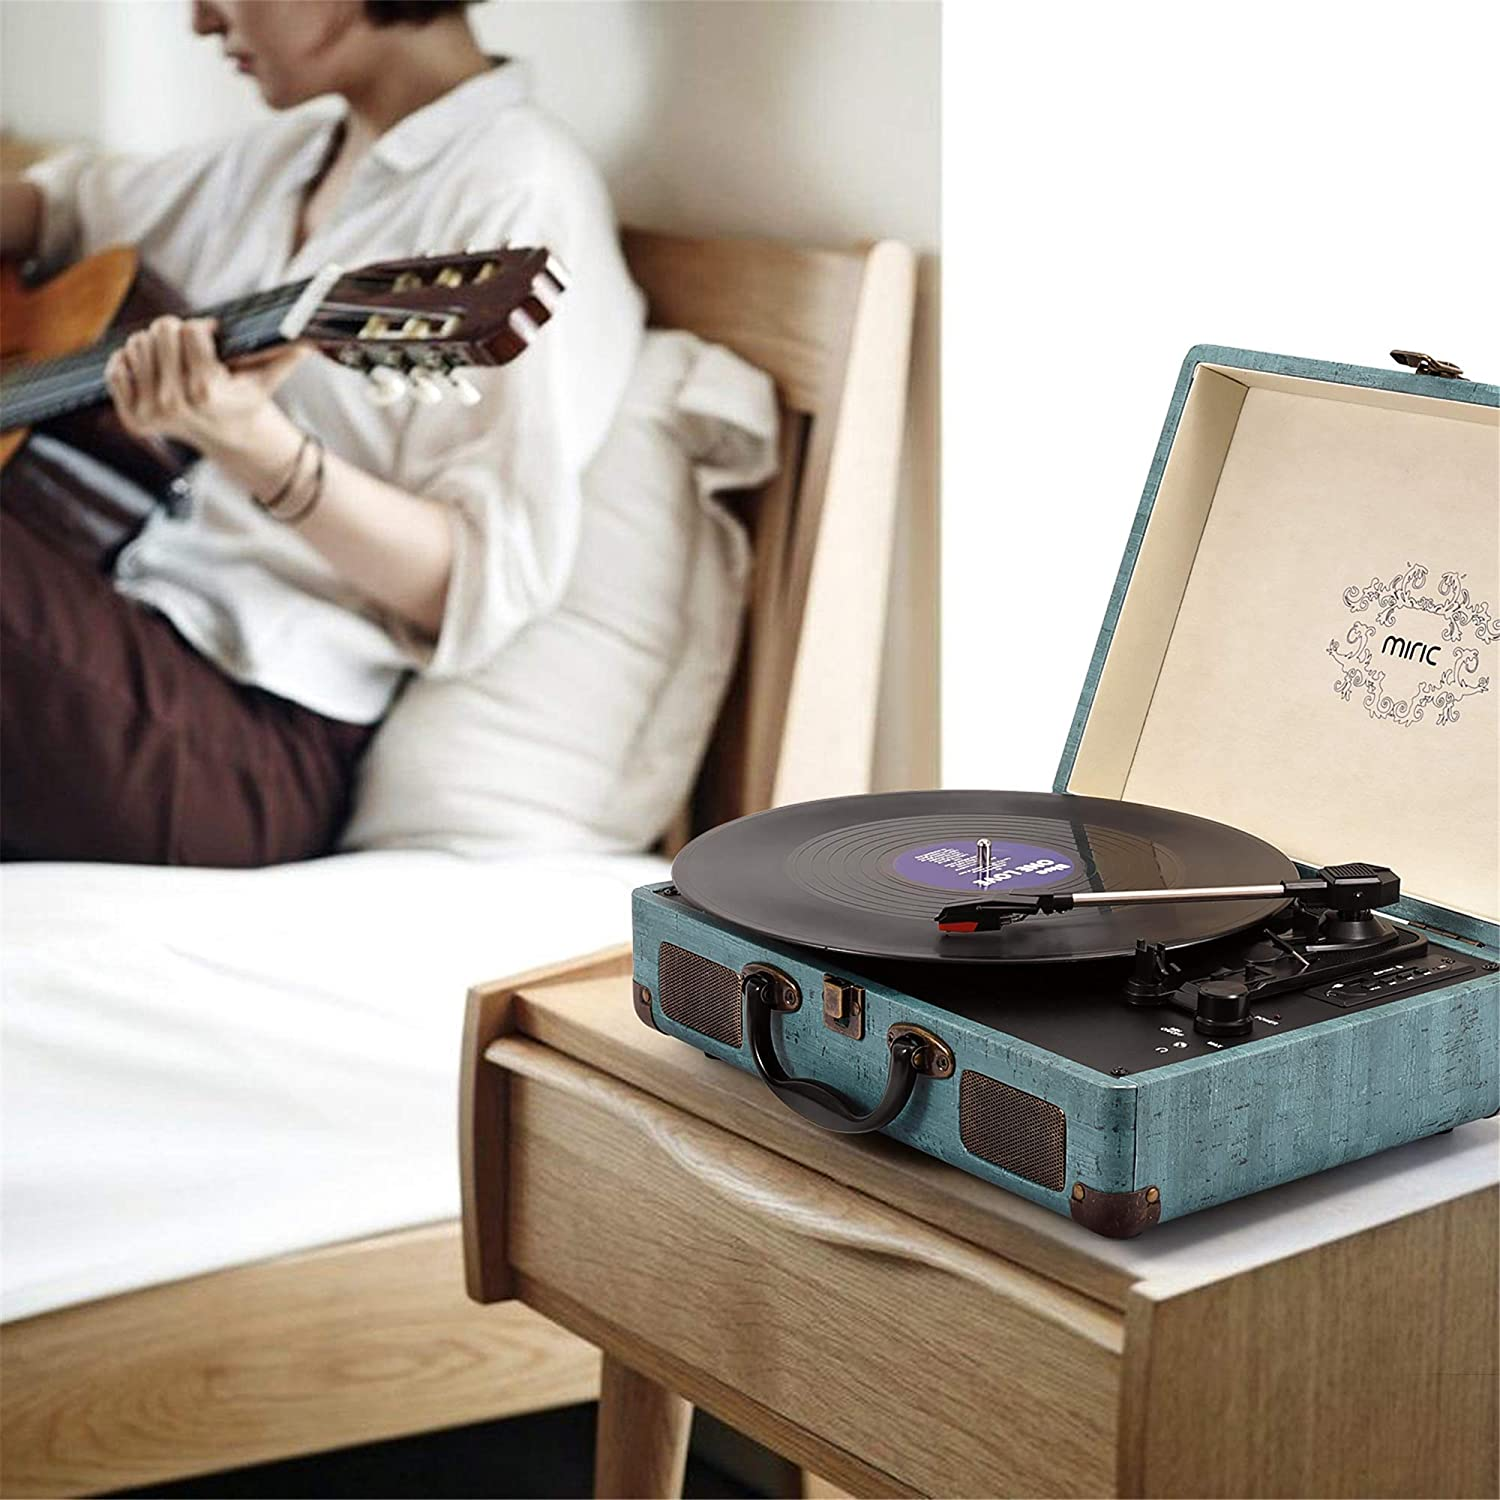 3-Speed Record Player Equipped USB//SD//AUX Port Portable Size Miric Bluetooth Turntable with 2 Built-in Speakers Support Transcription Suitcase Design for 7//10//12inch Vinyl Records